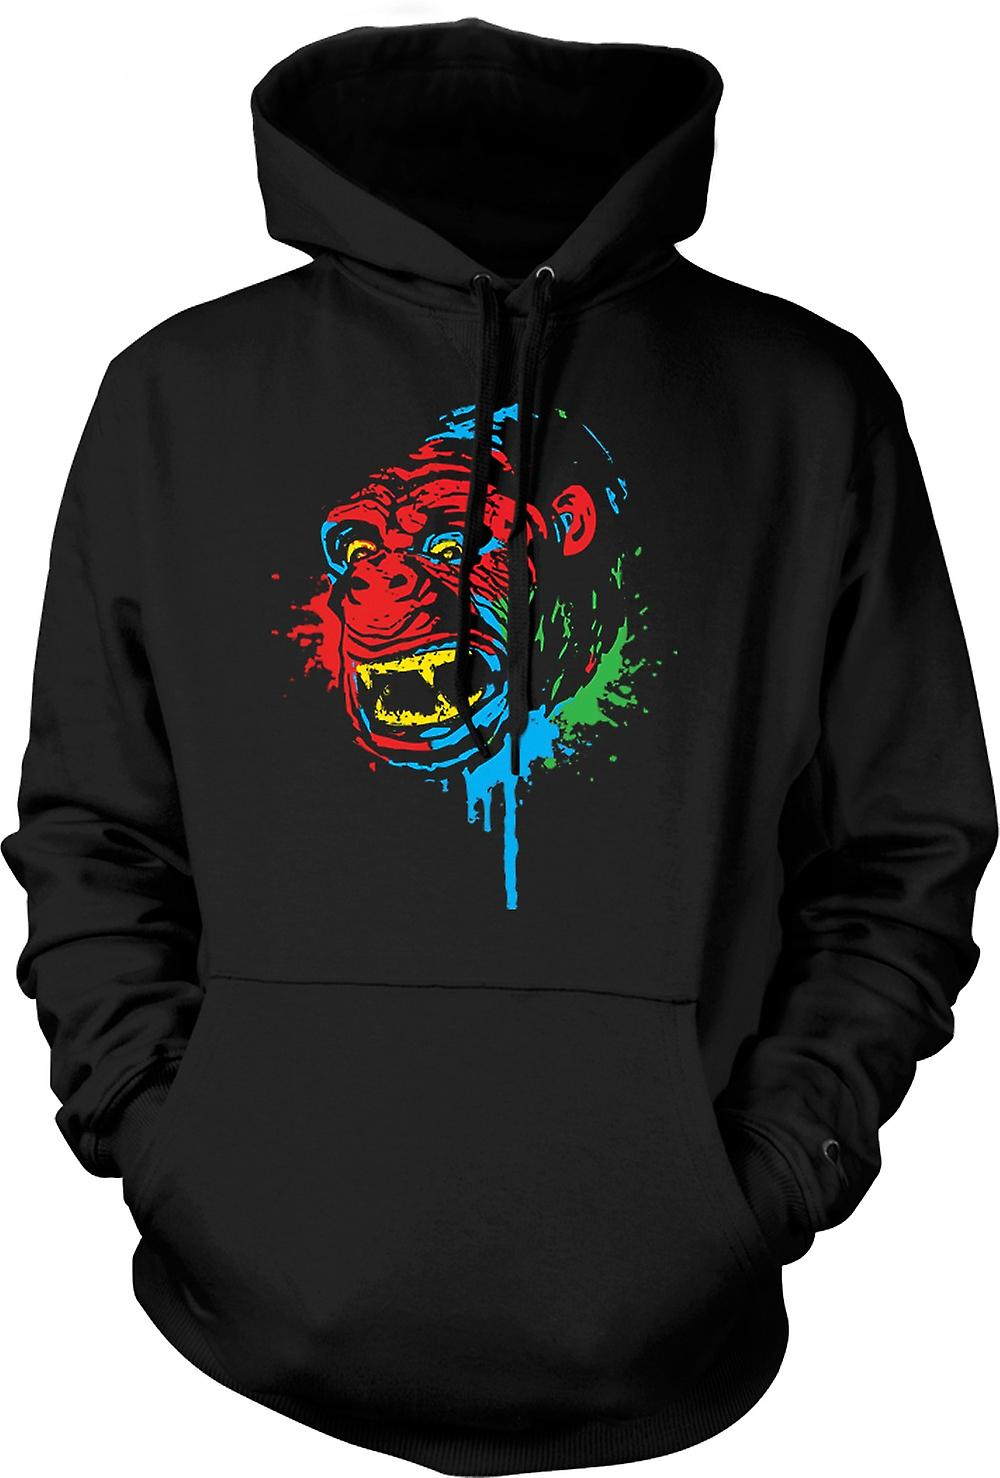 Mens hettegenser - Pop Art - Ape Gorilla - kult Design